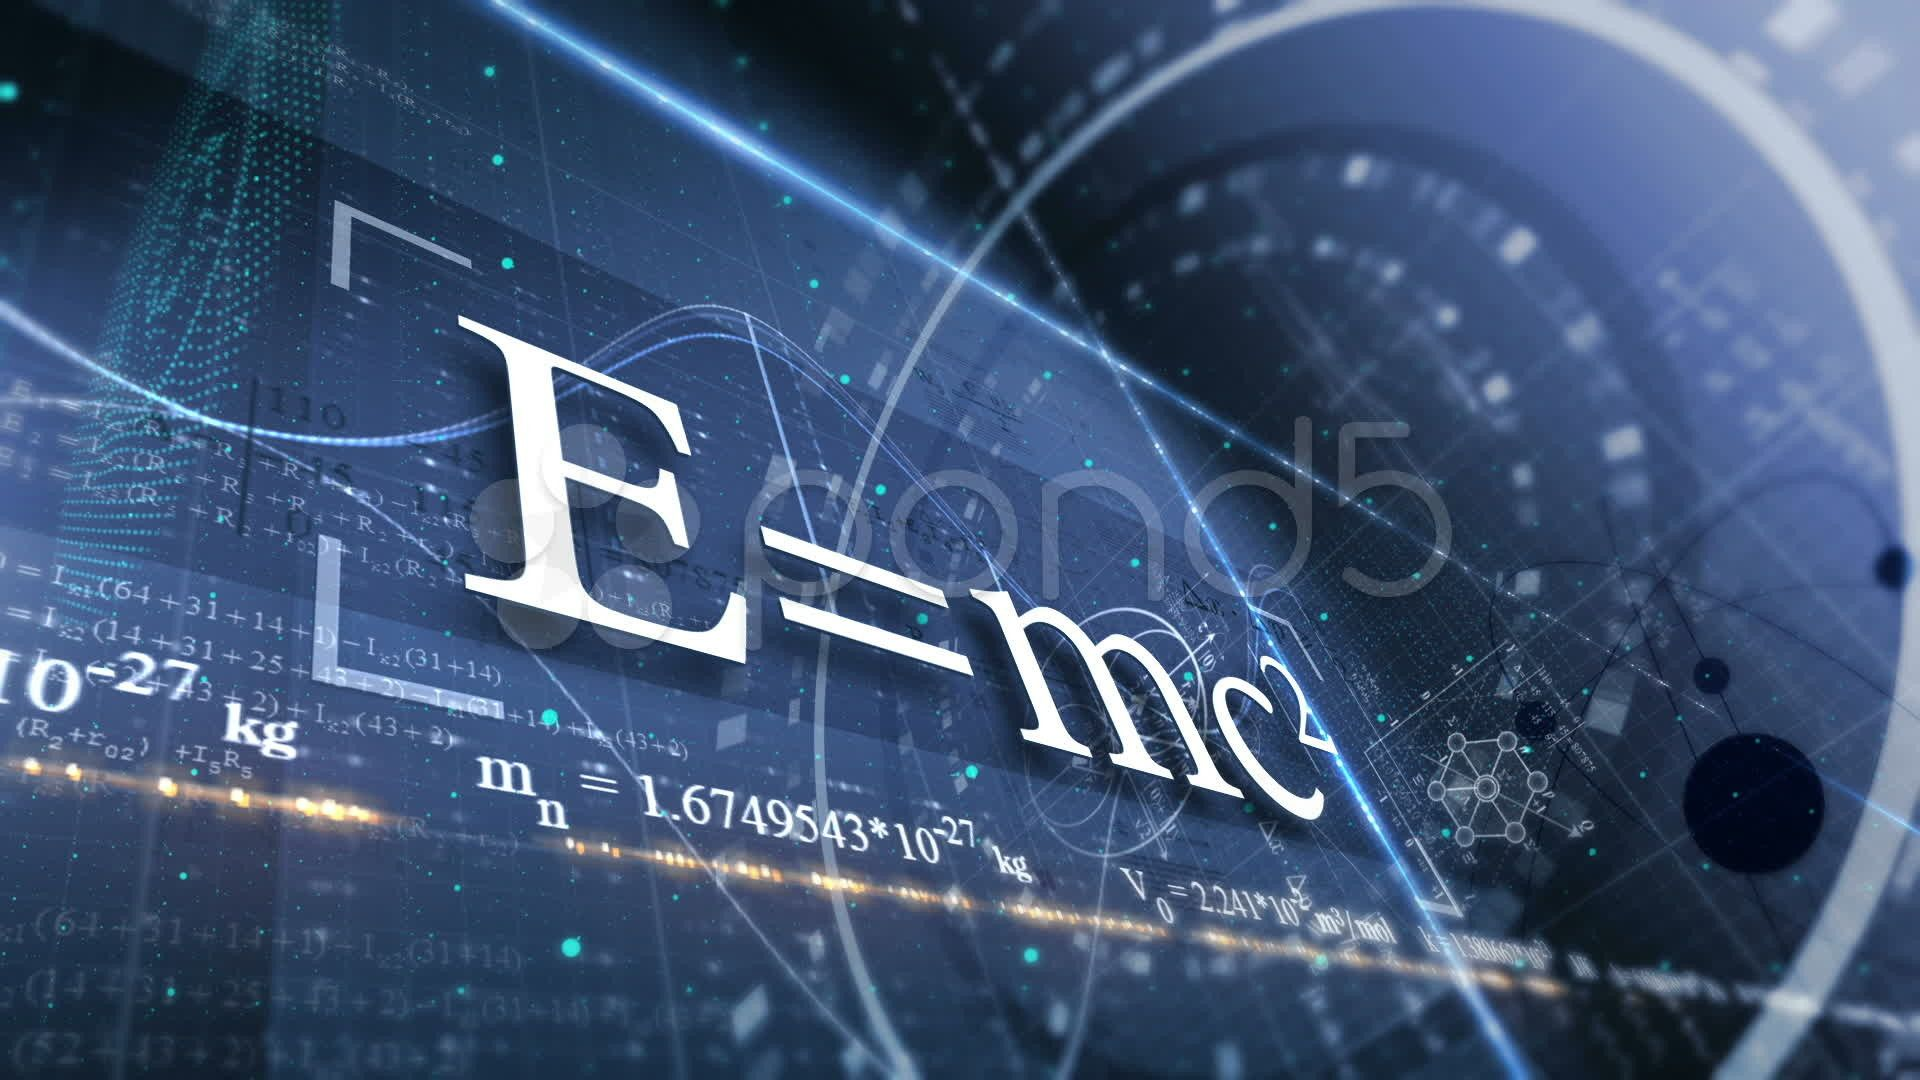 X Particle Physics Wallpaper